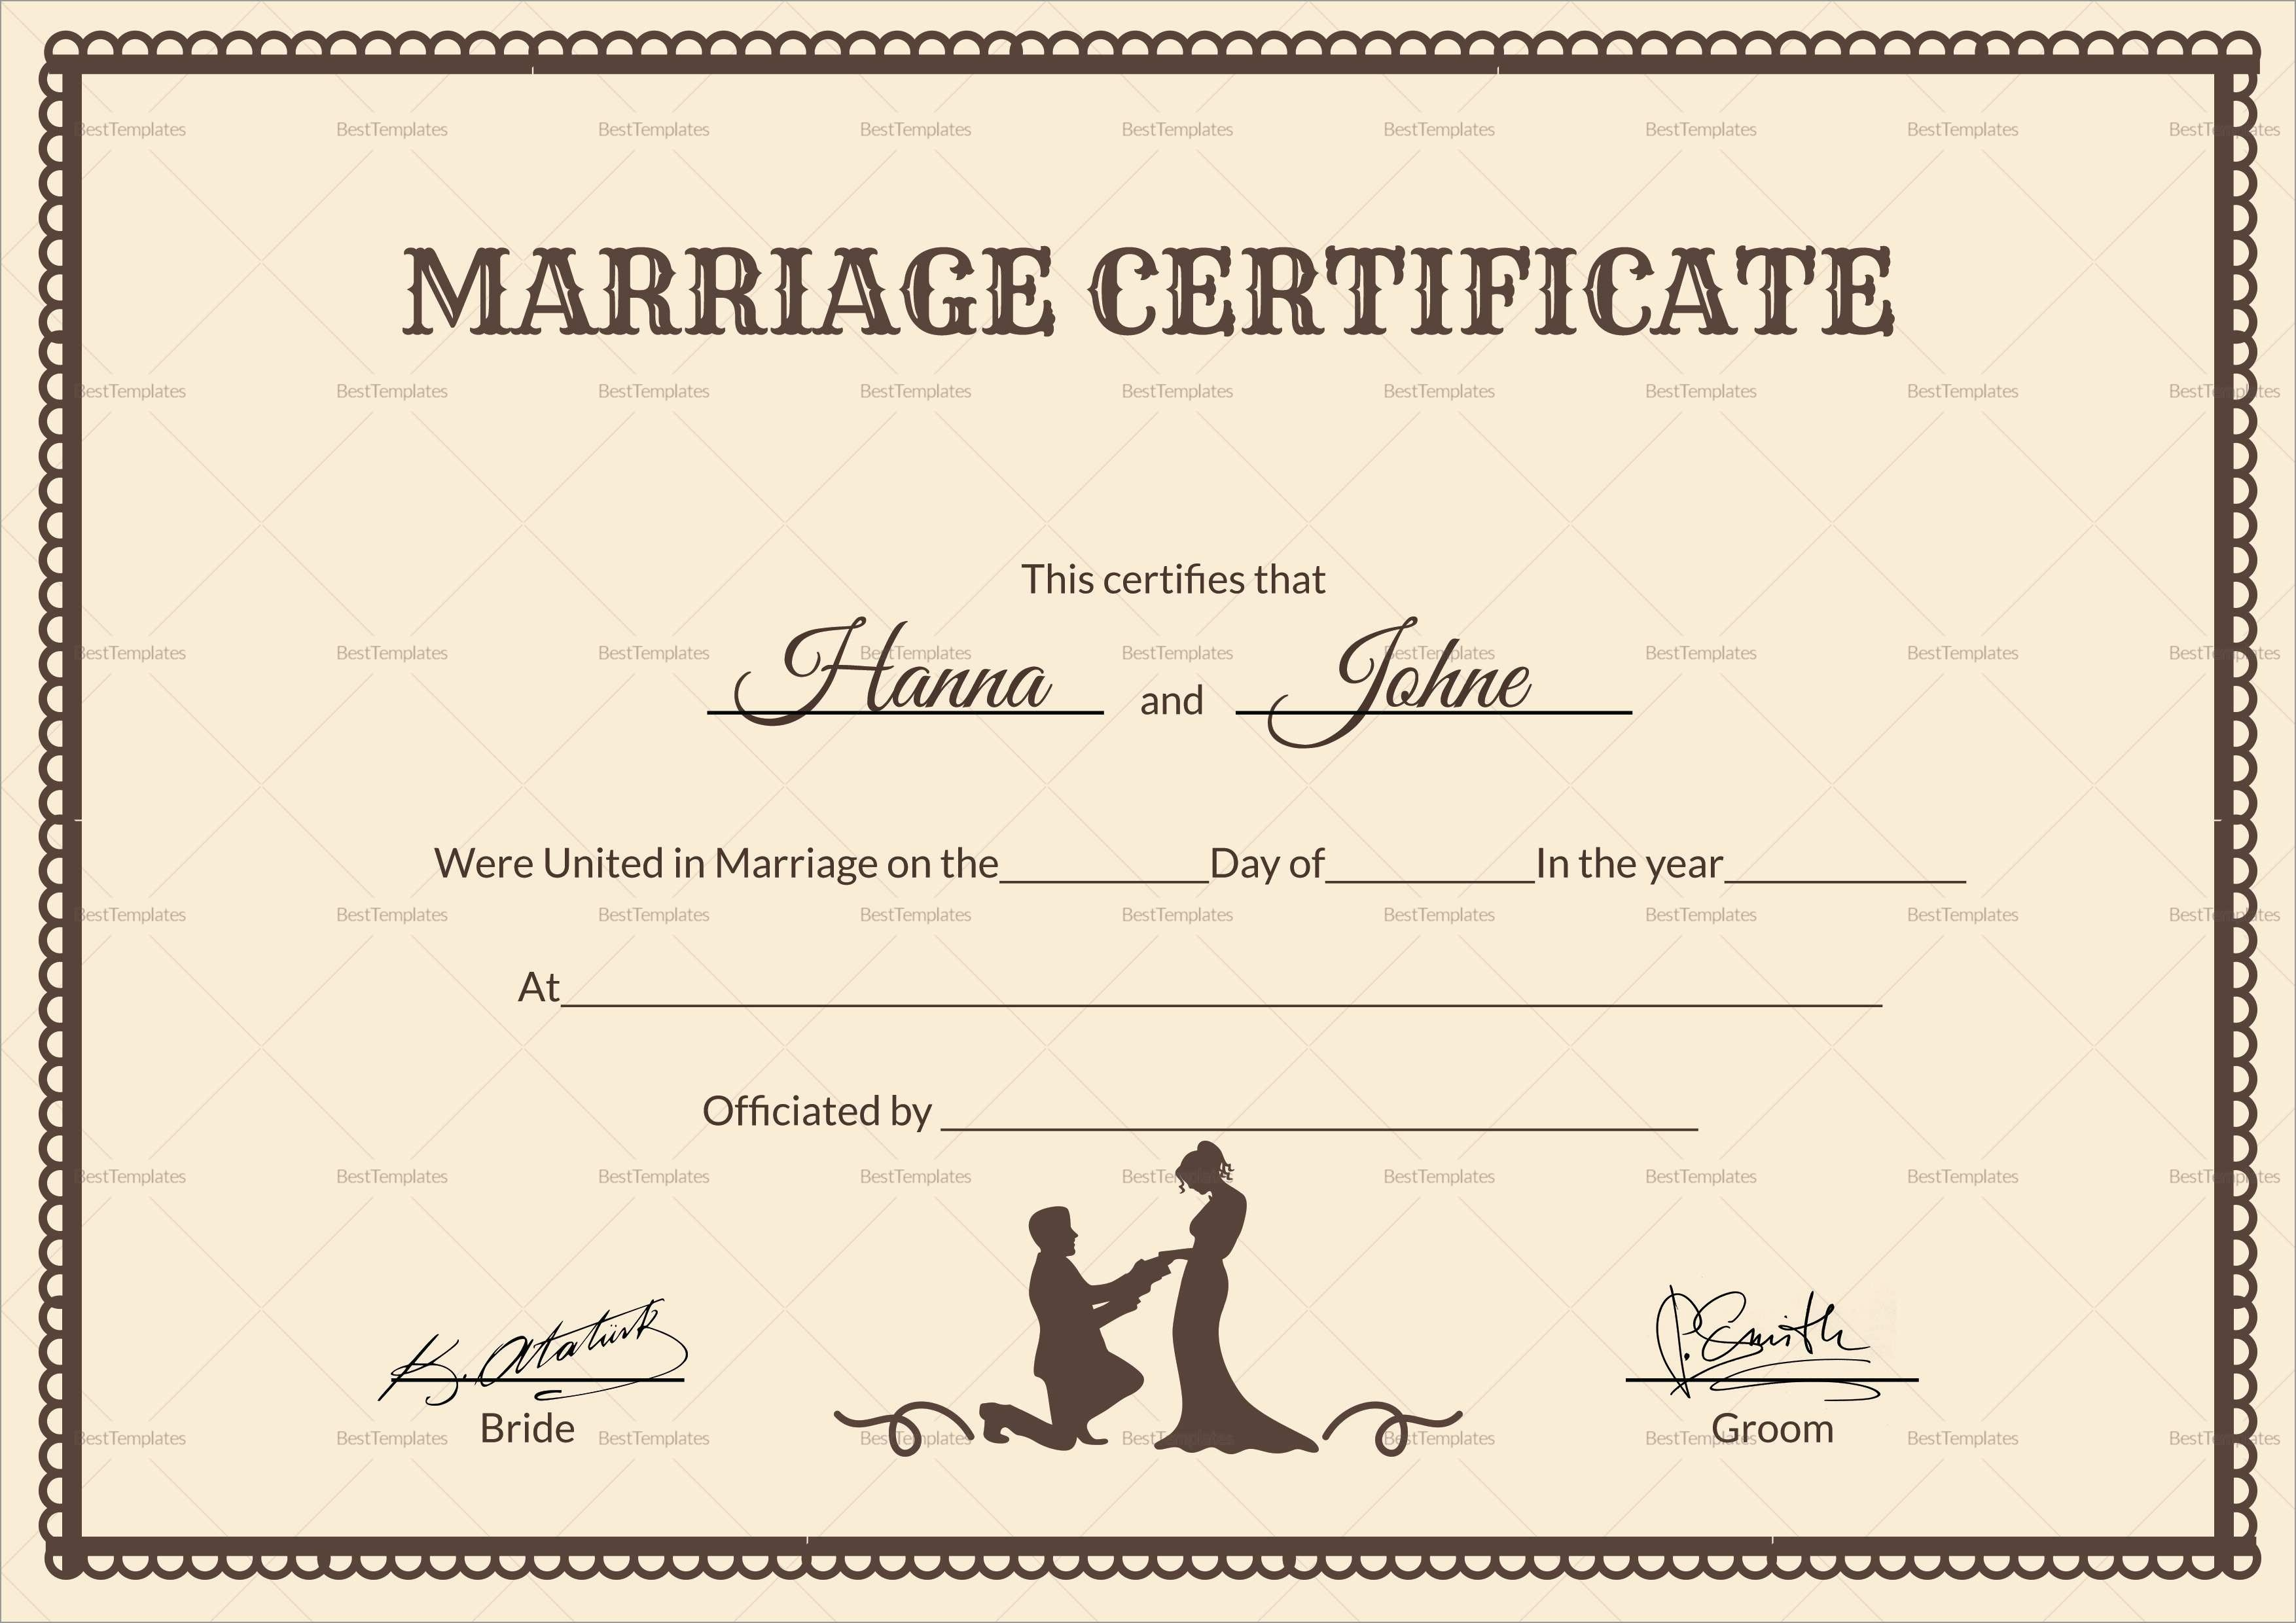 Free Marriage Certificate Template Word Amazing Printable Marriage - Free Printable Wedding Certificates